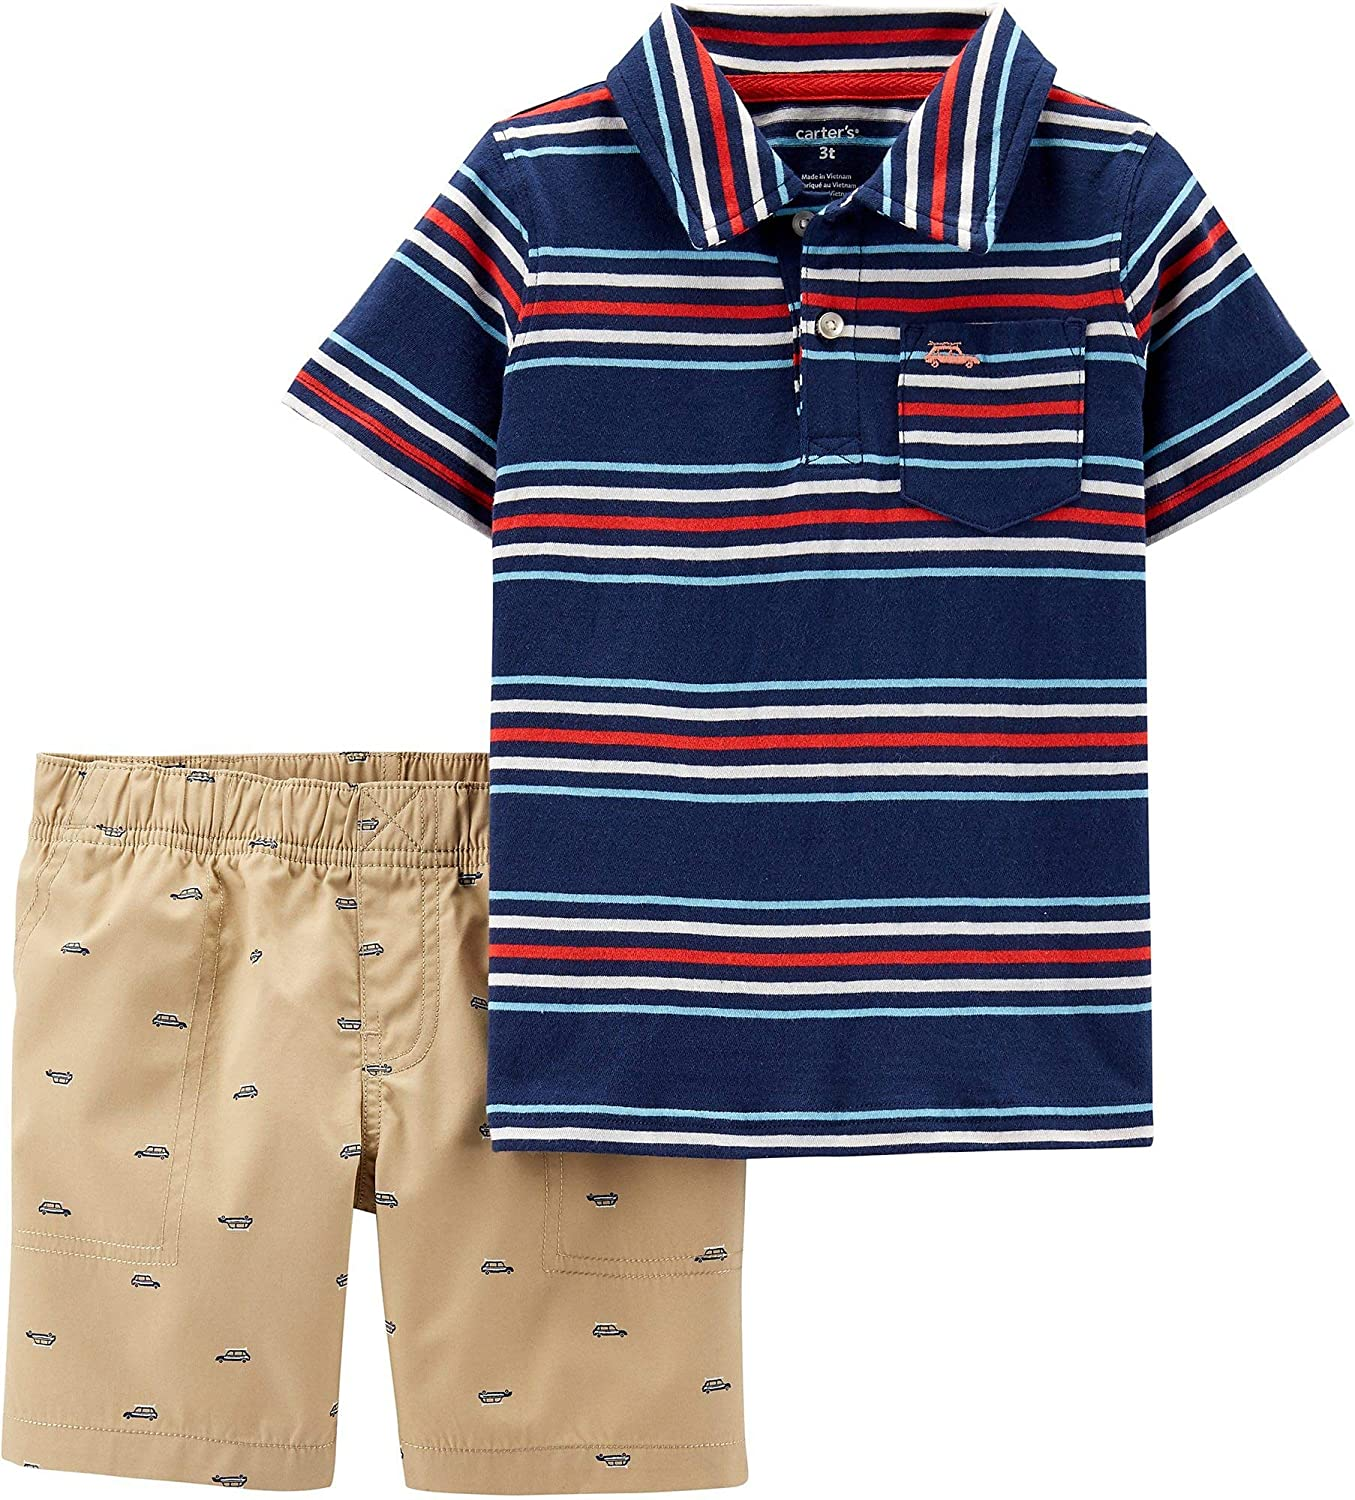 Carter's Baby Boys Striped Beach Wagon Shorts Set 18 Months Navy Blue Multi